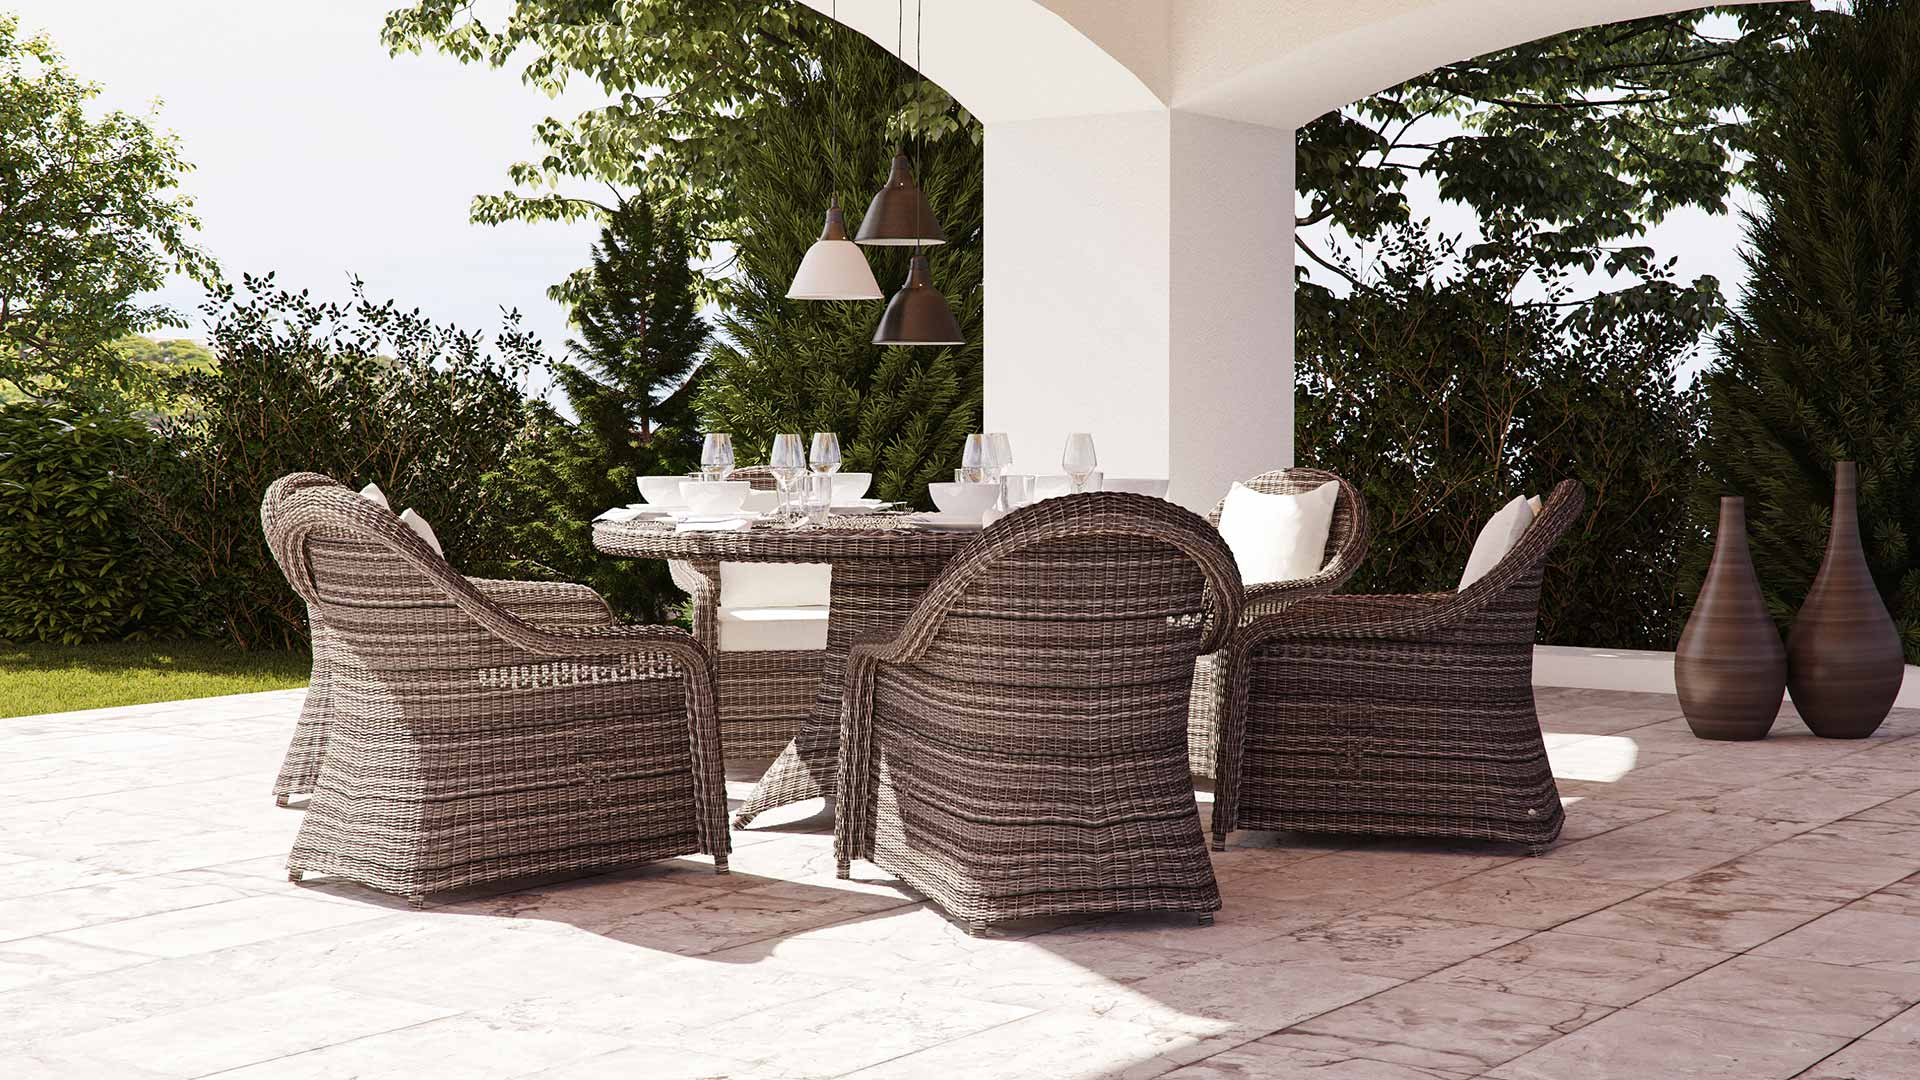 artelia rattan essgruppe f r 6 personen mit tisch und. Black Bedroom Furniture Sets. Home Design Ideas